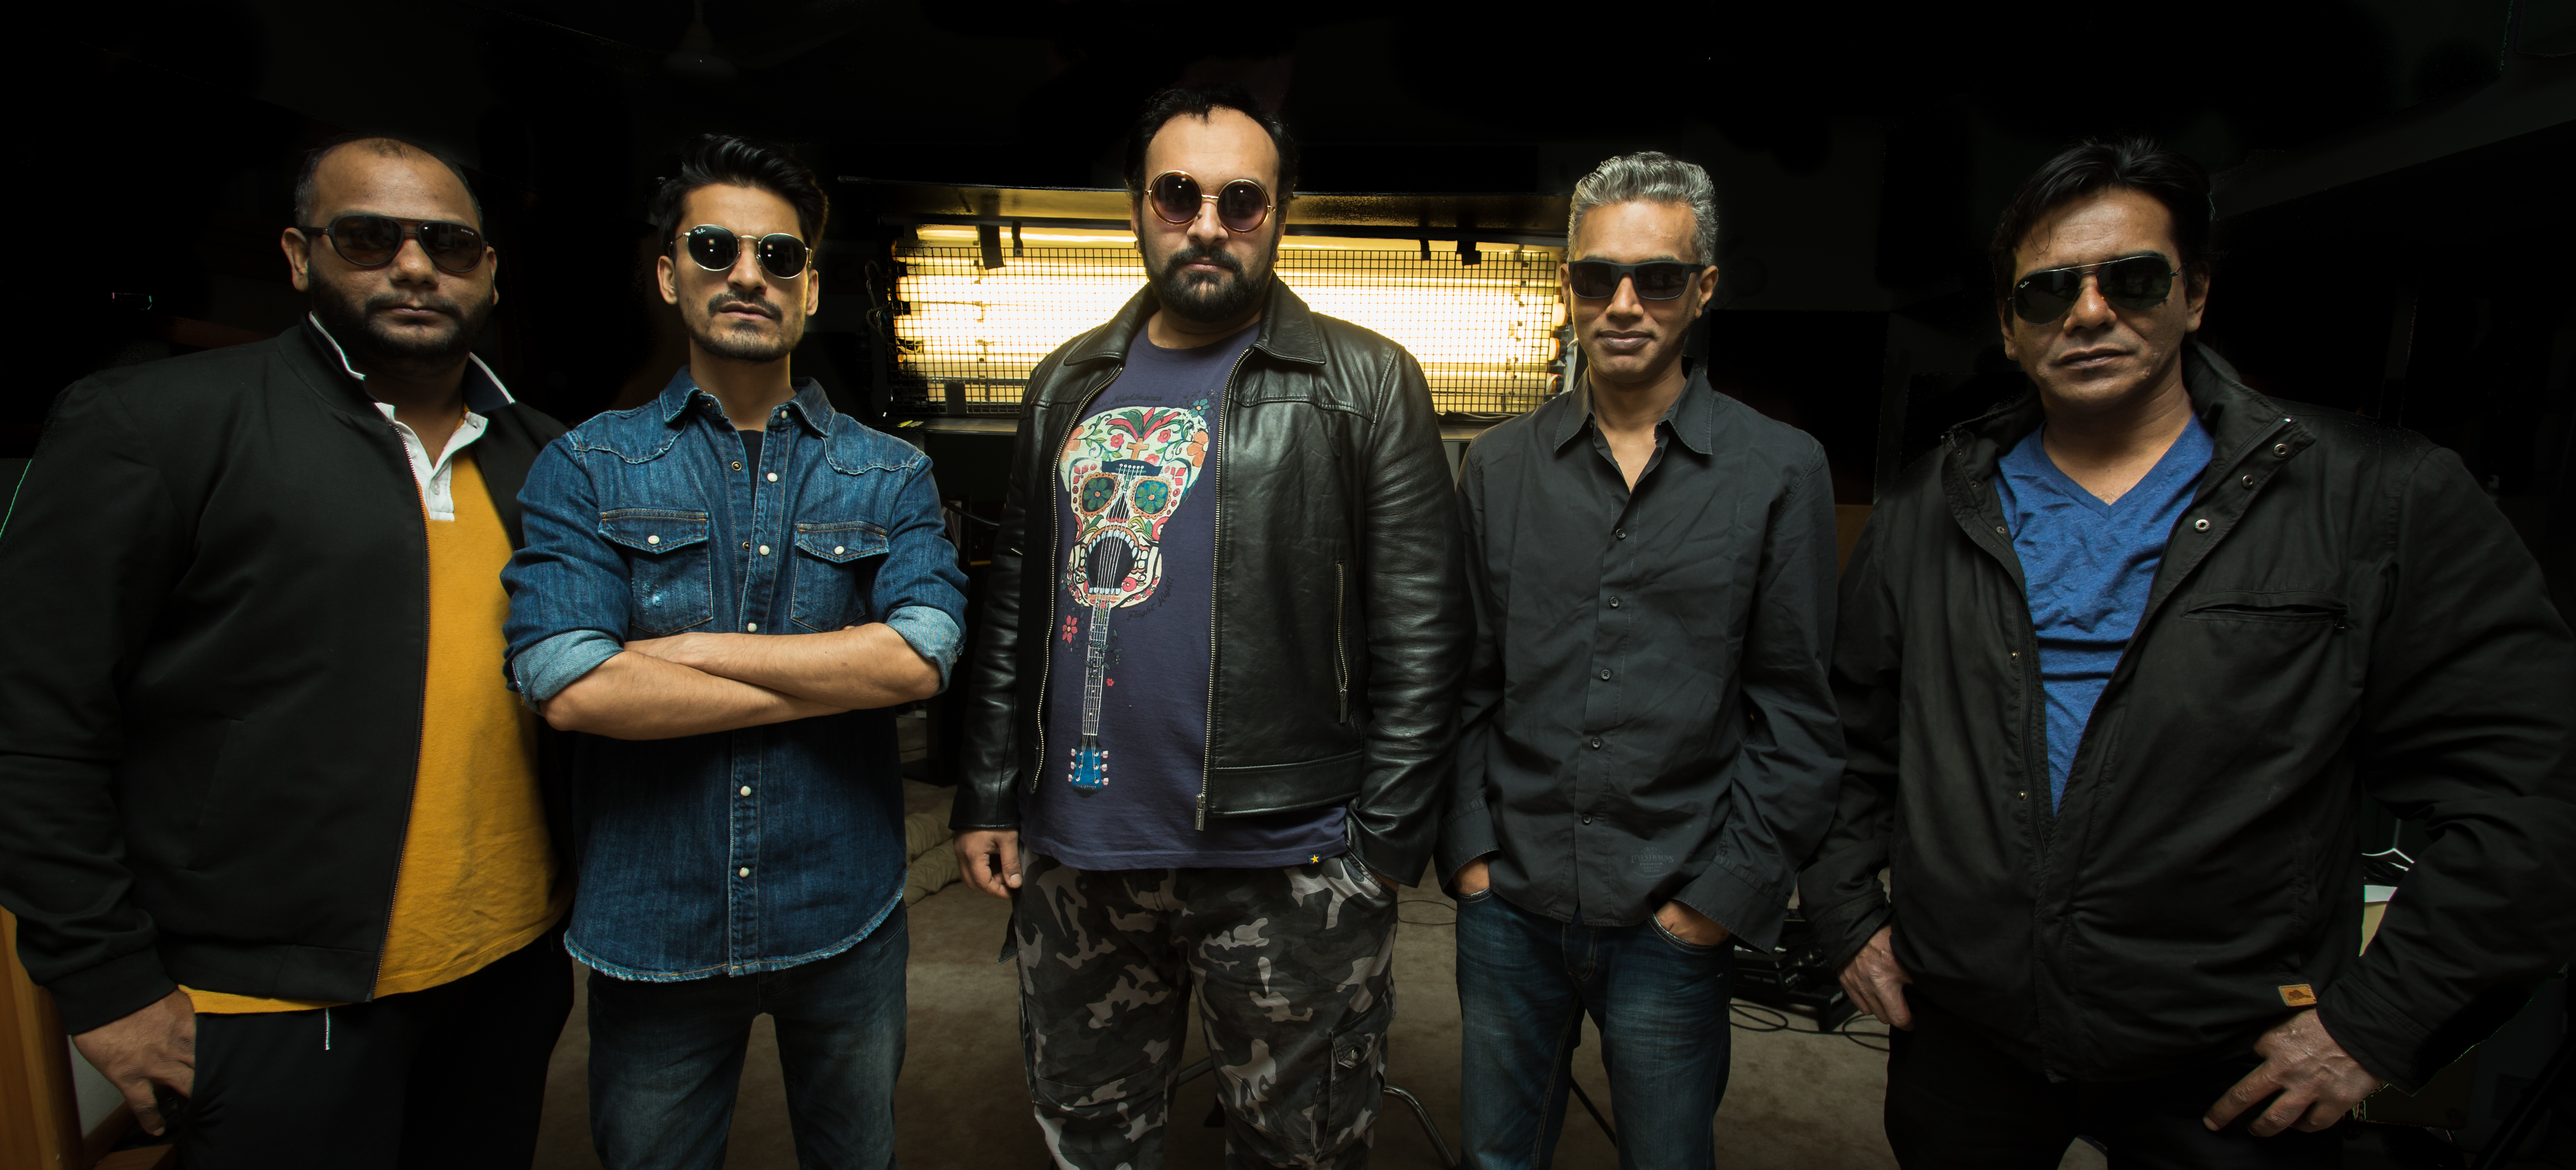 surkhwaab takes flight with a unique take on folk fusion